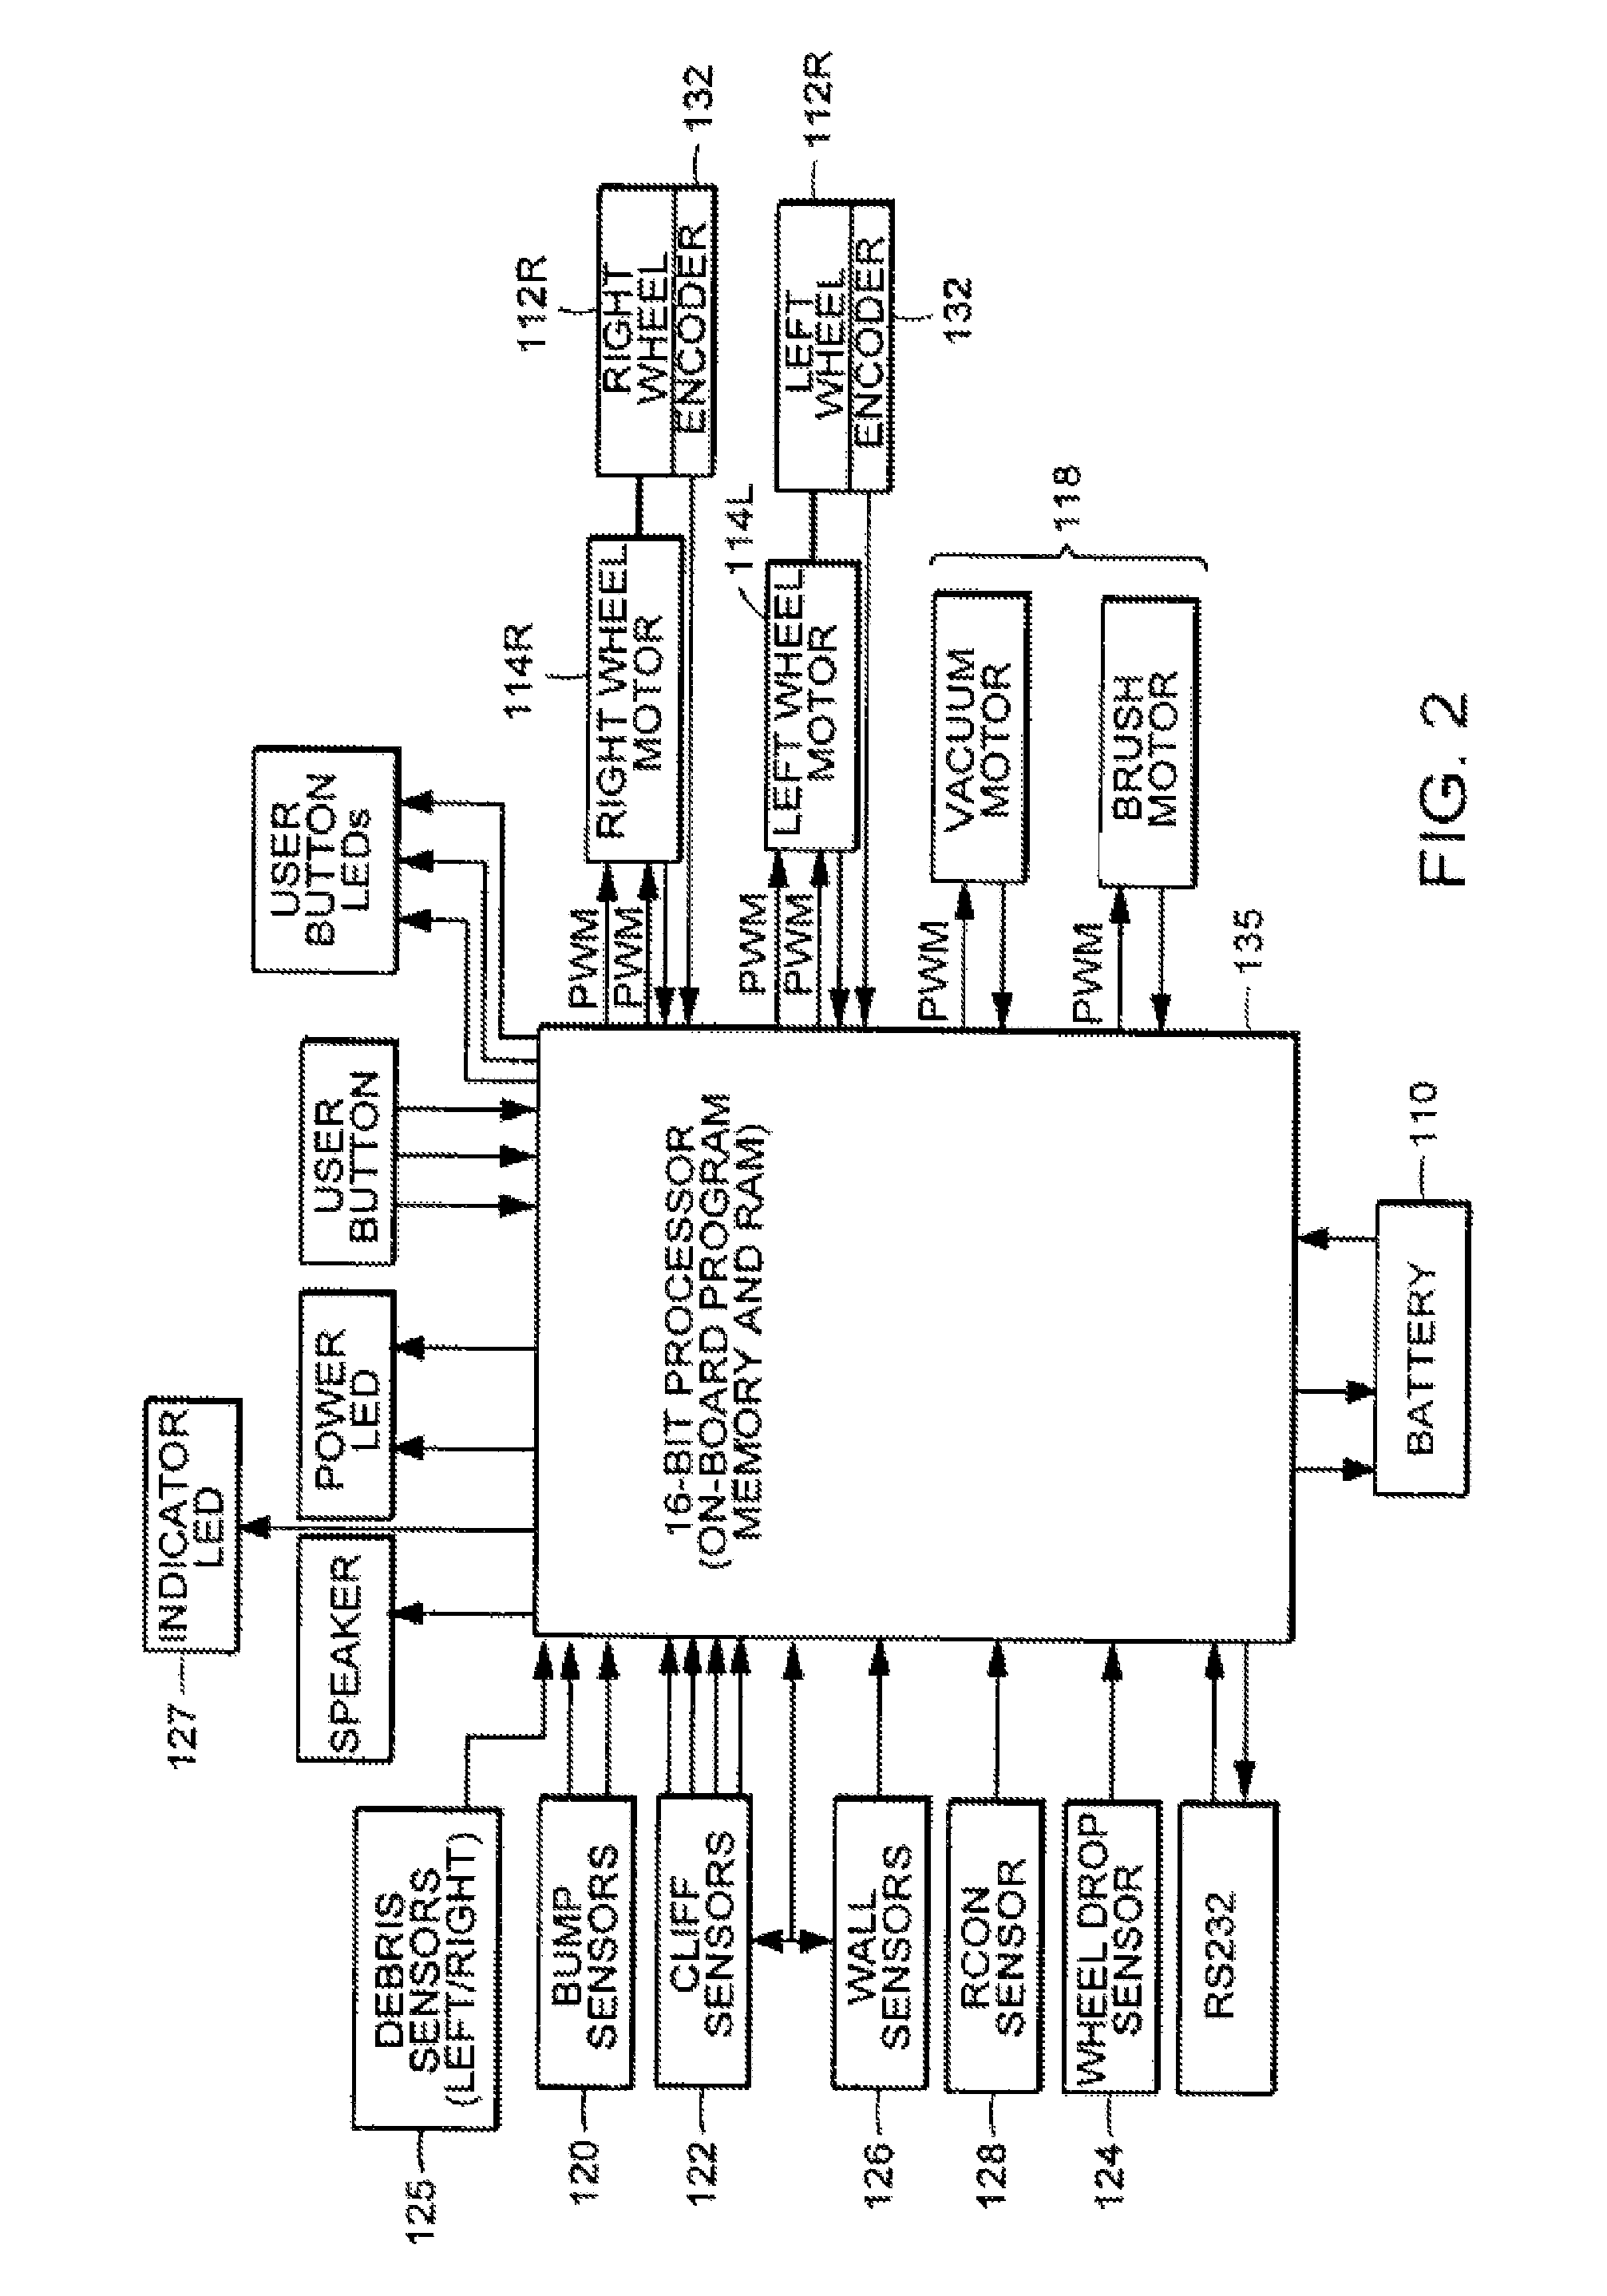 Infrared Remote Contr Stepped Attenuator For Replacing Rc Motor